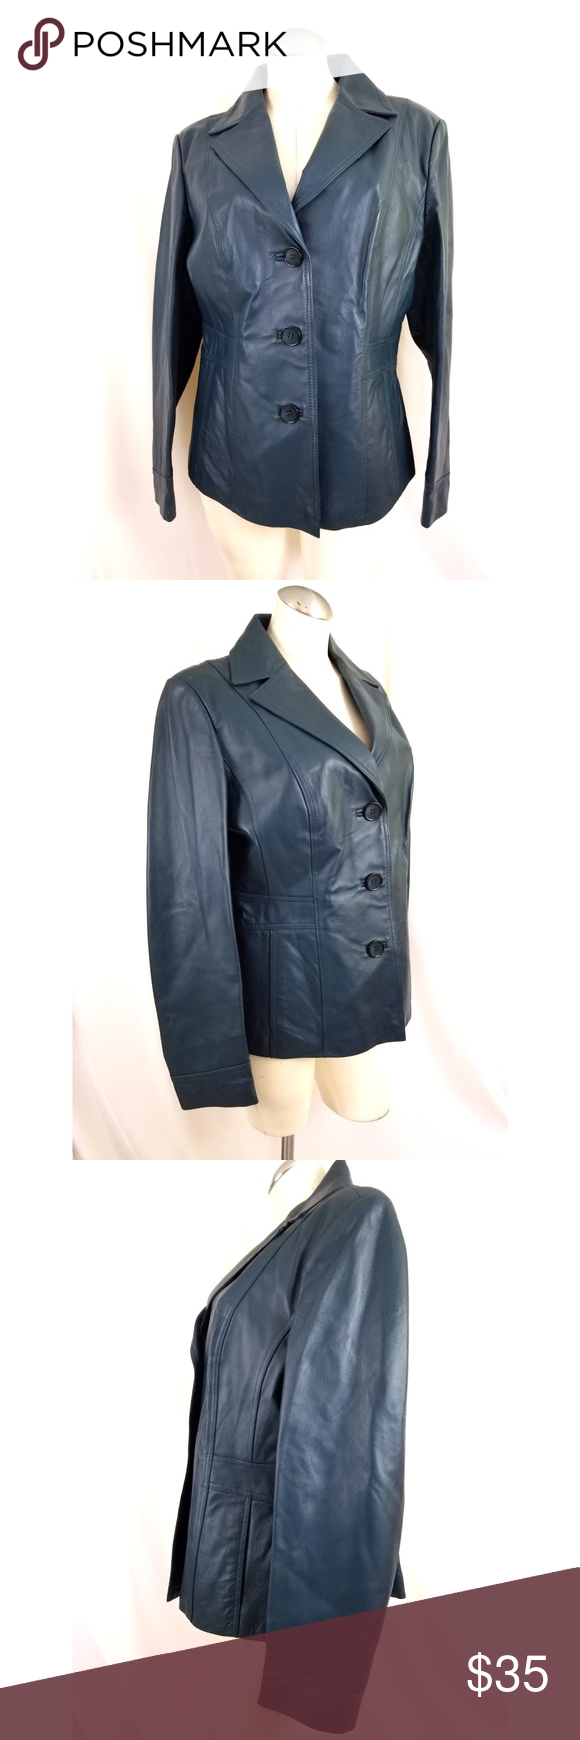 East 5th Size L Teal Leather Jacket Teal leather